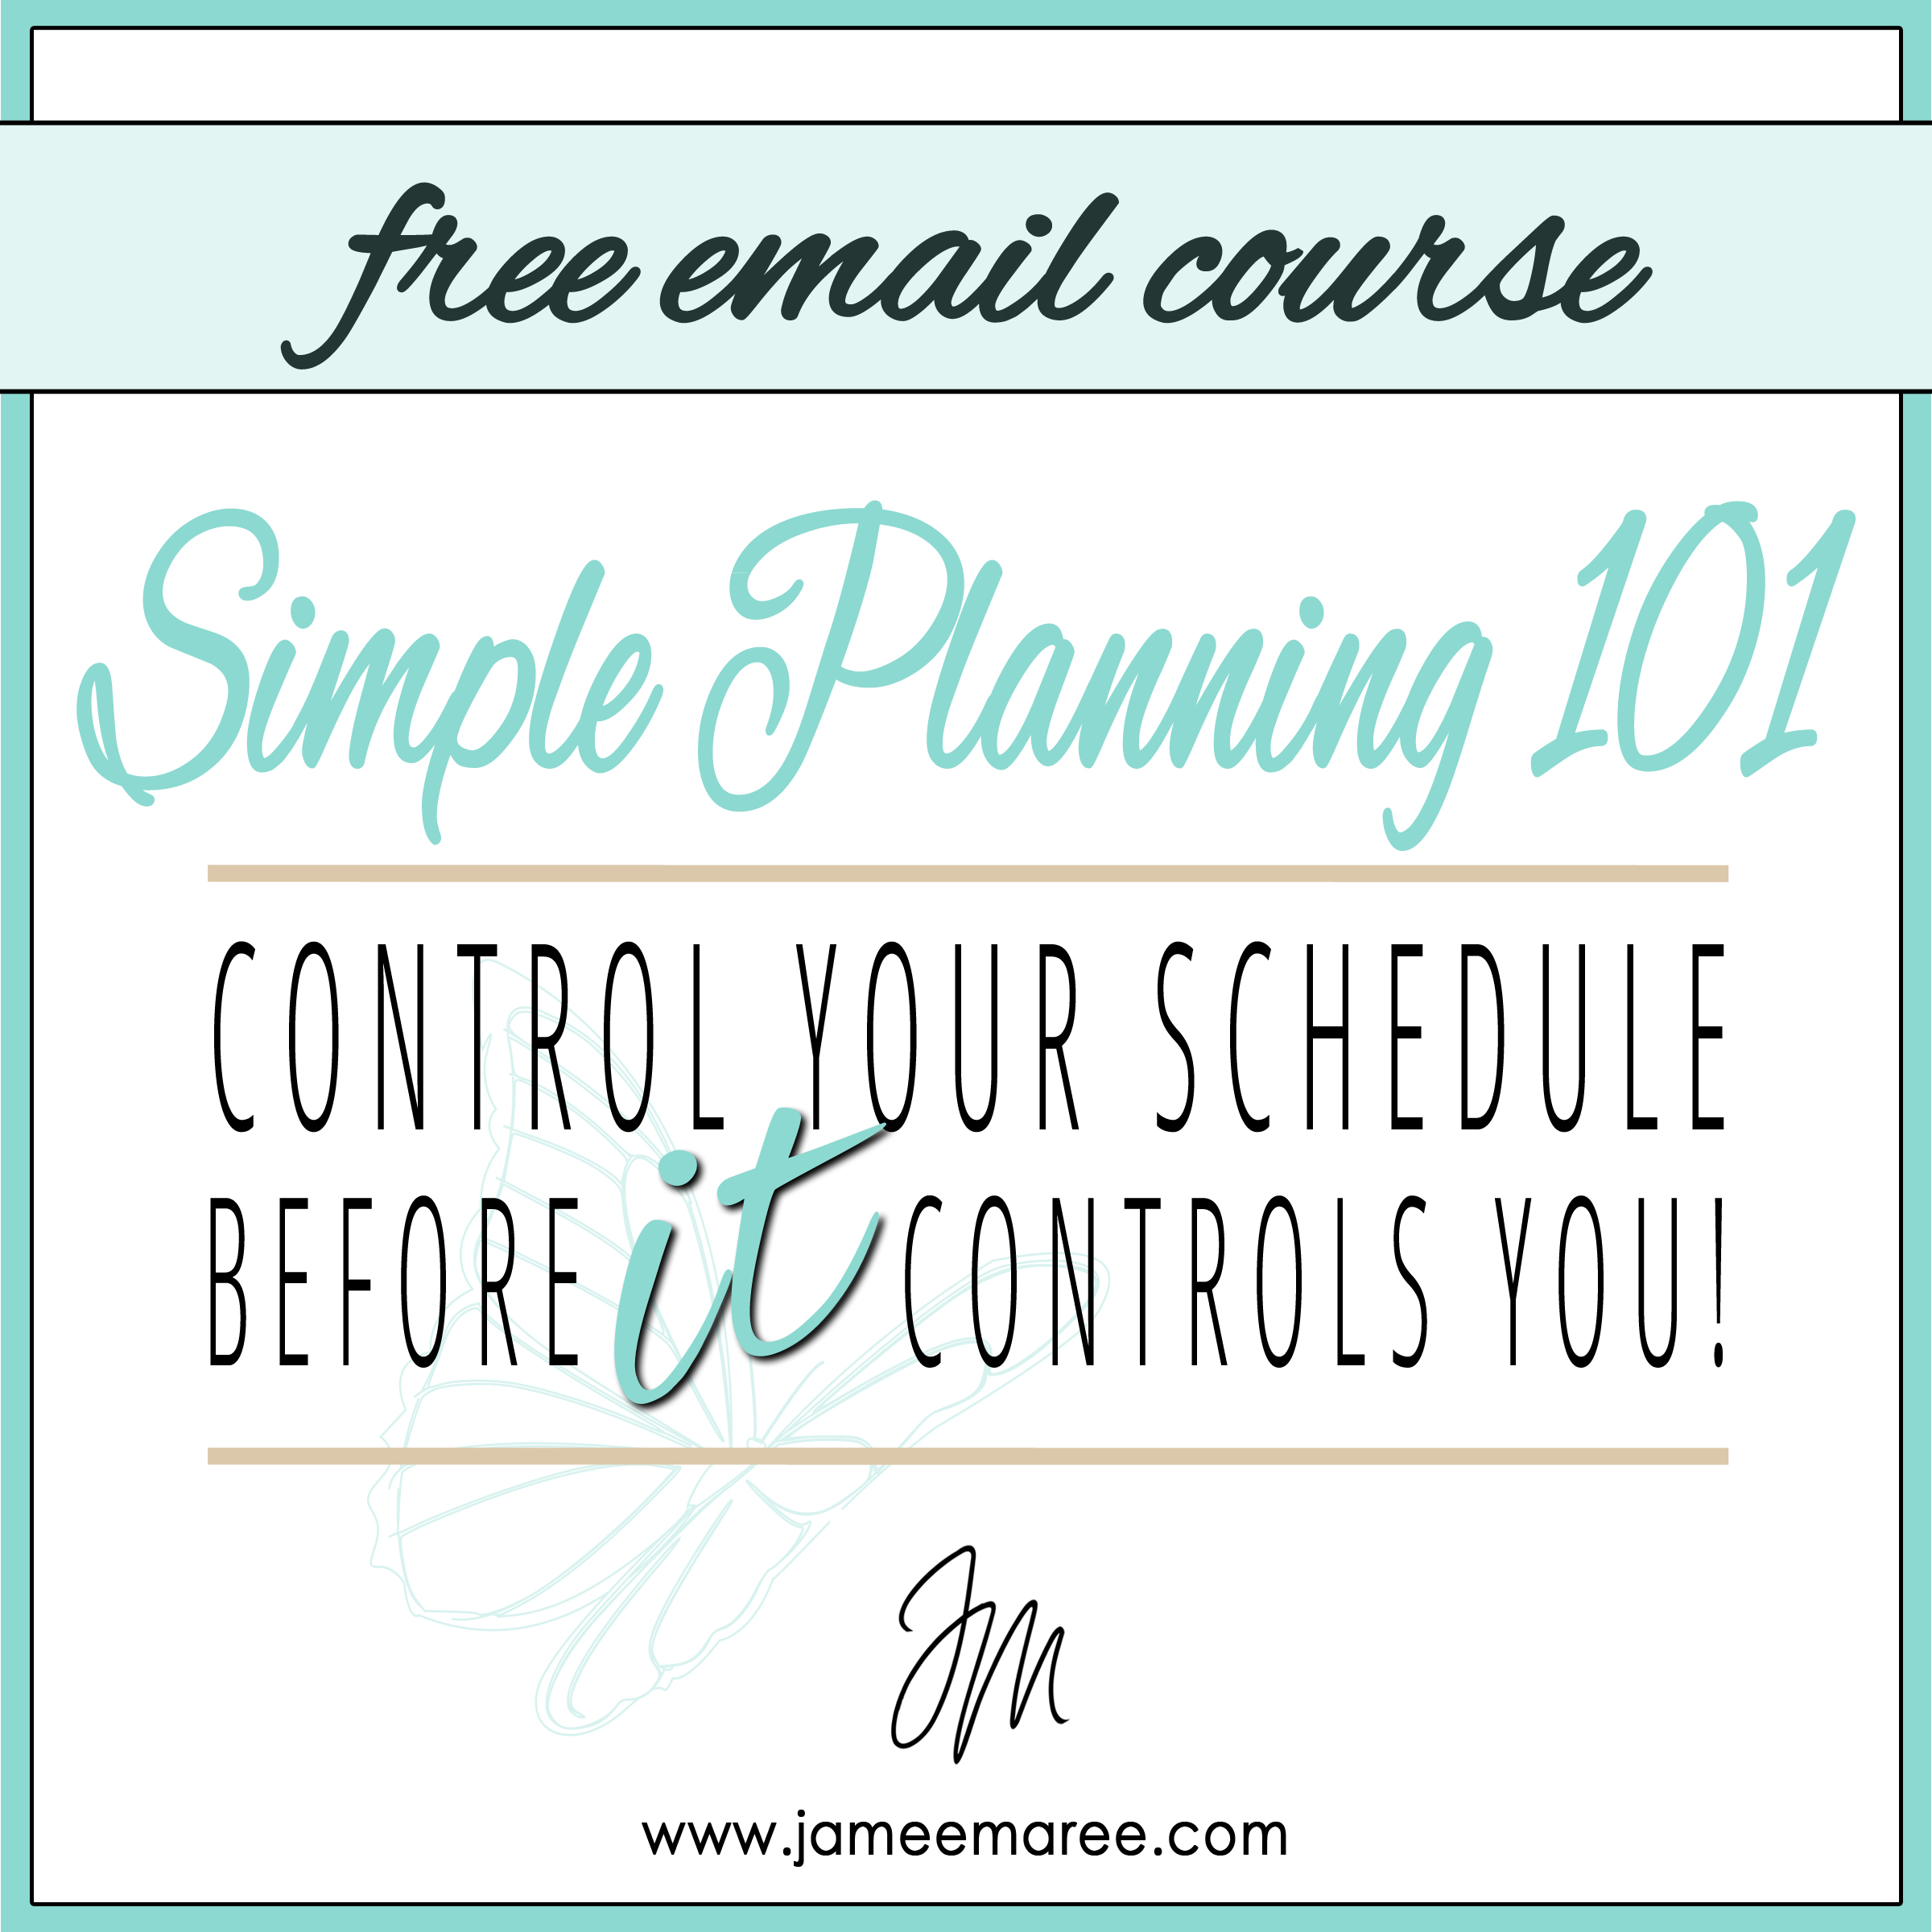 #simpleplanning101 FREE COURSE: Are you ready to take back control of your schedule before it controls you?